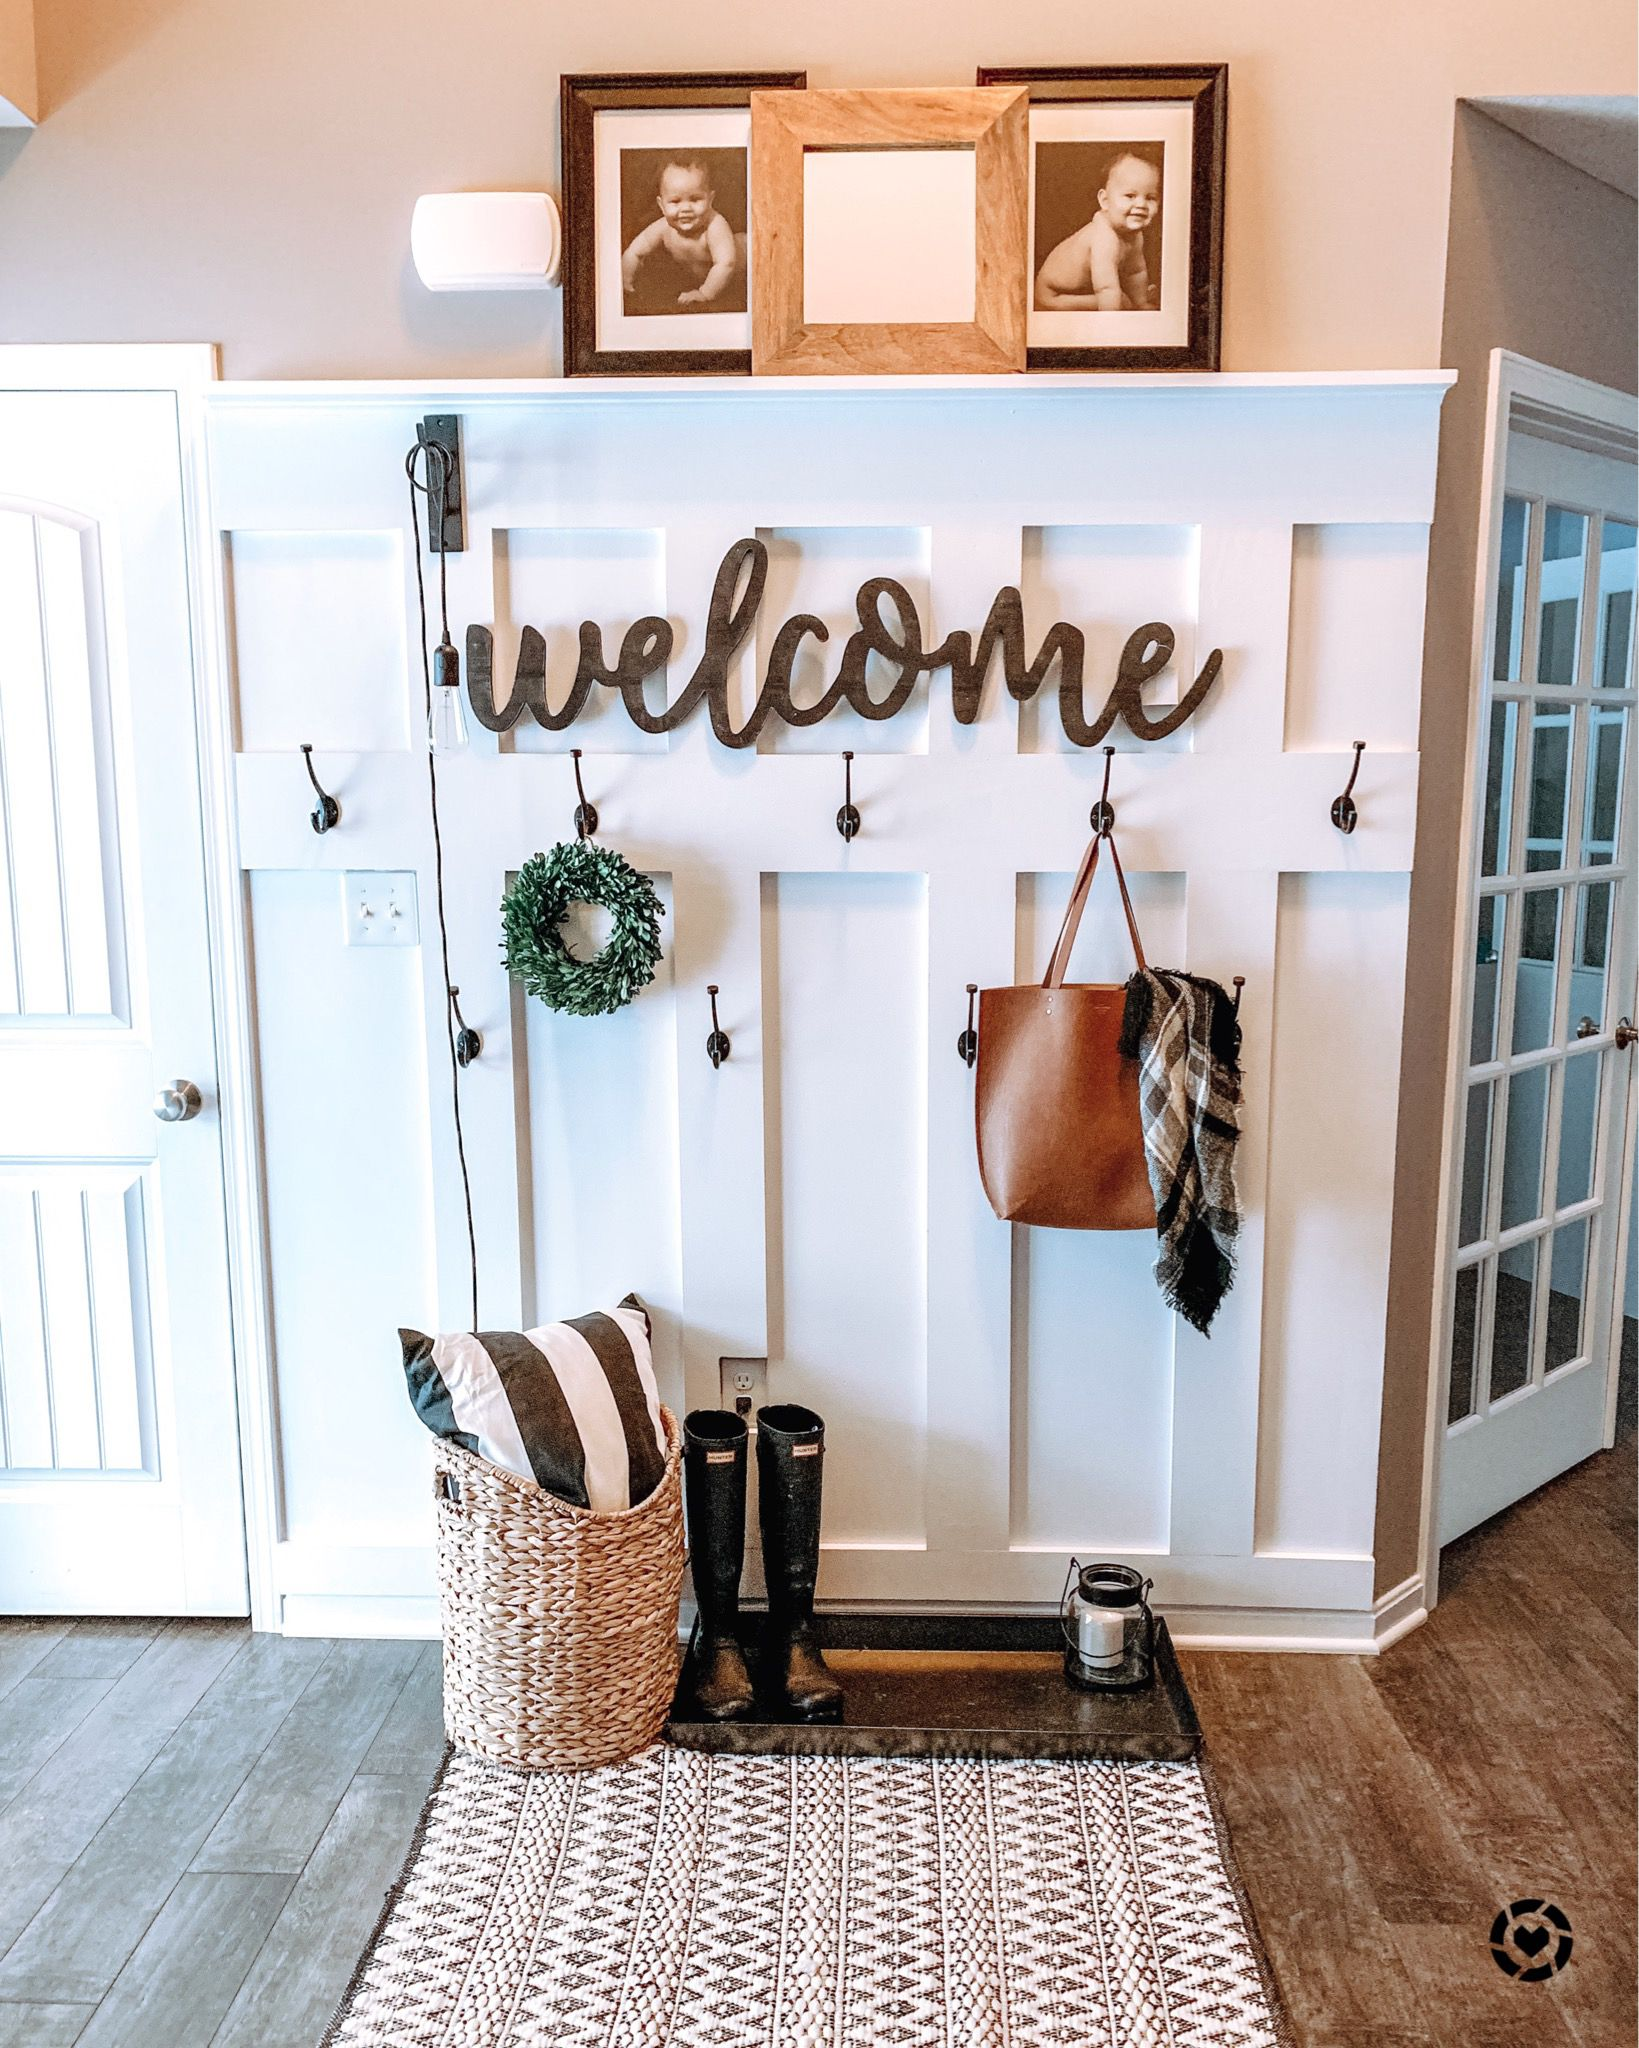 Board Batten Entryway Wall In 2020 Home Home Decor Home Remodeling